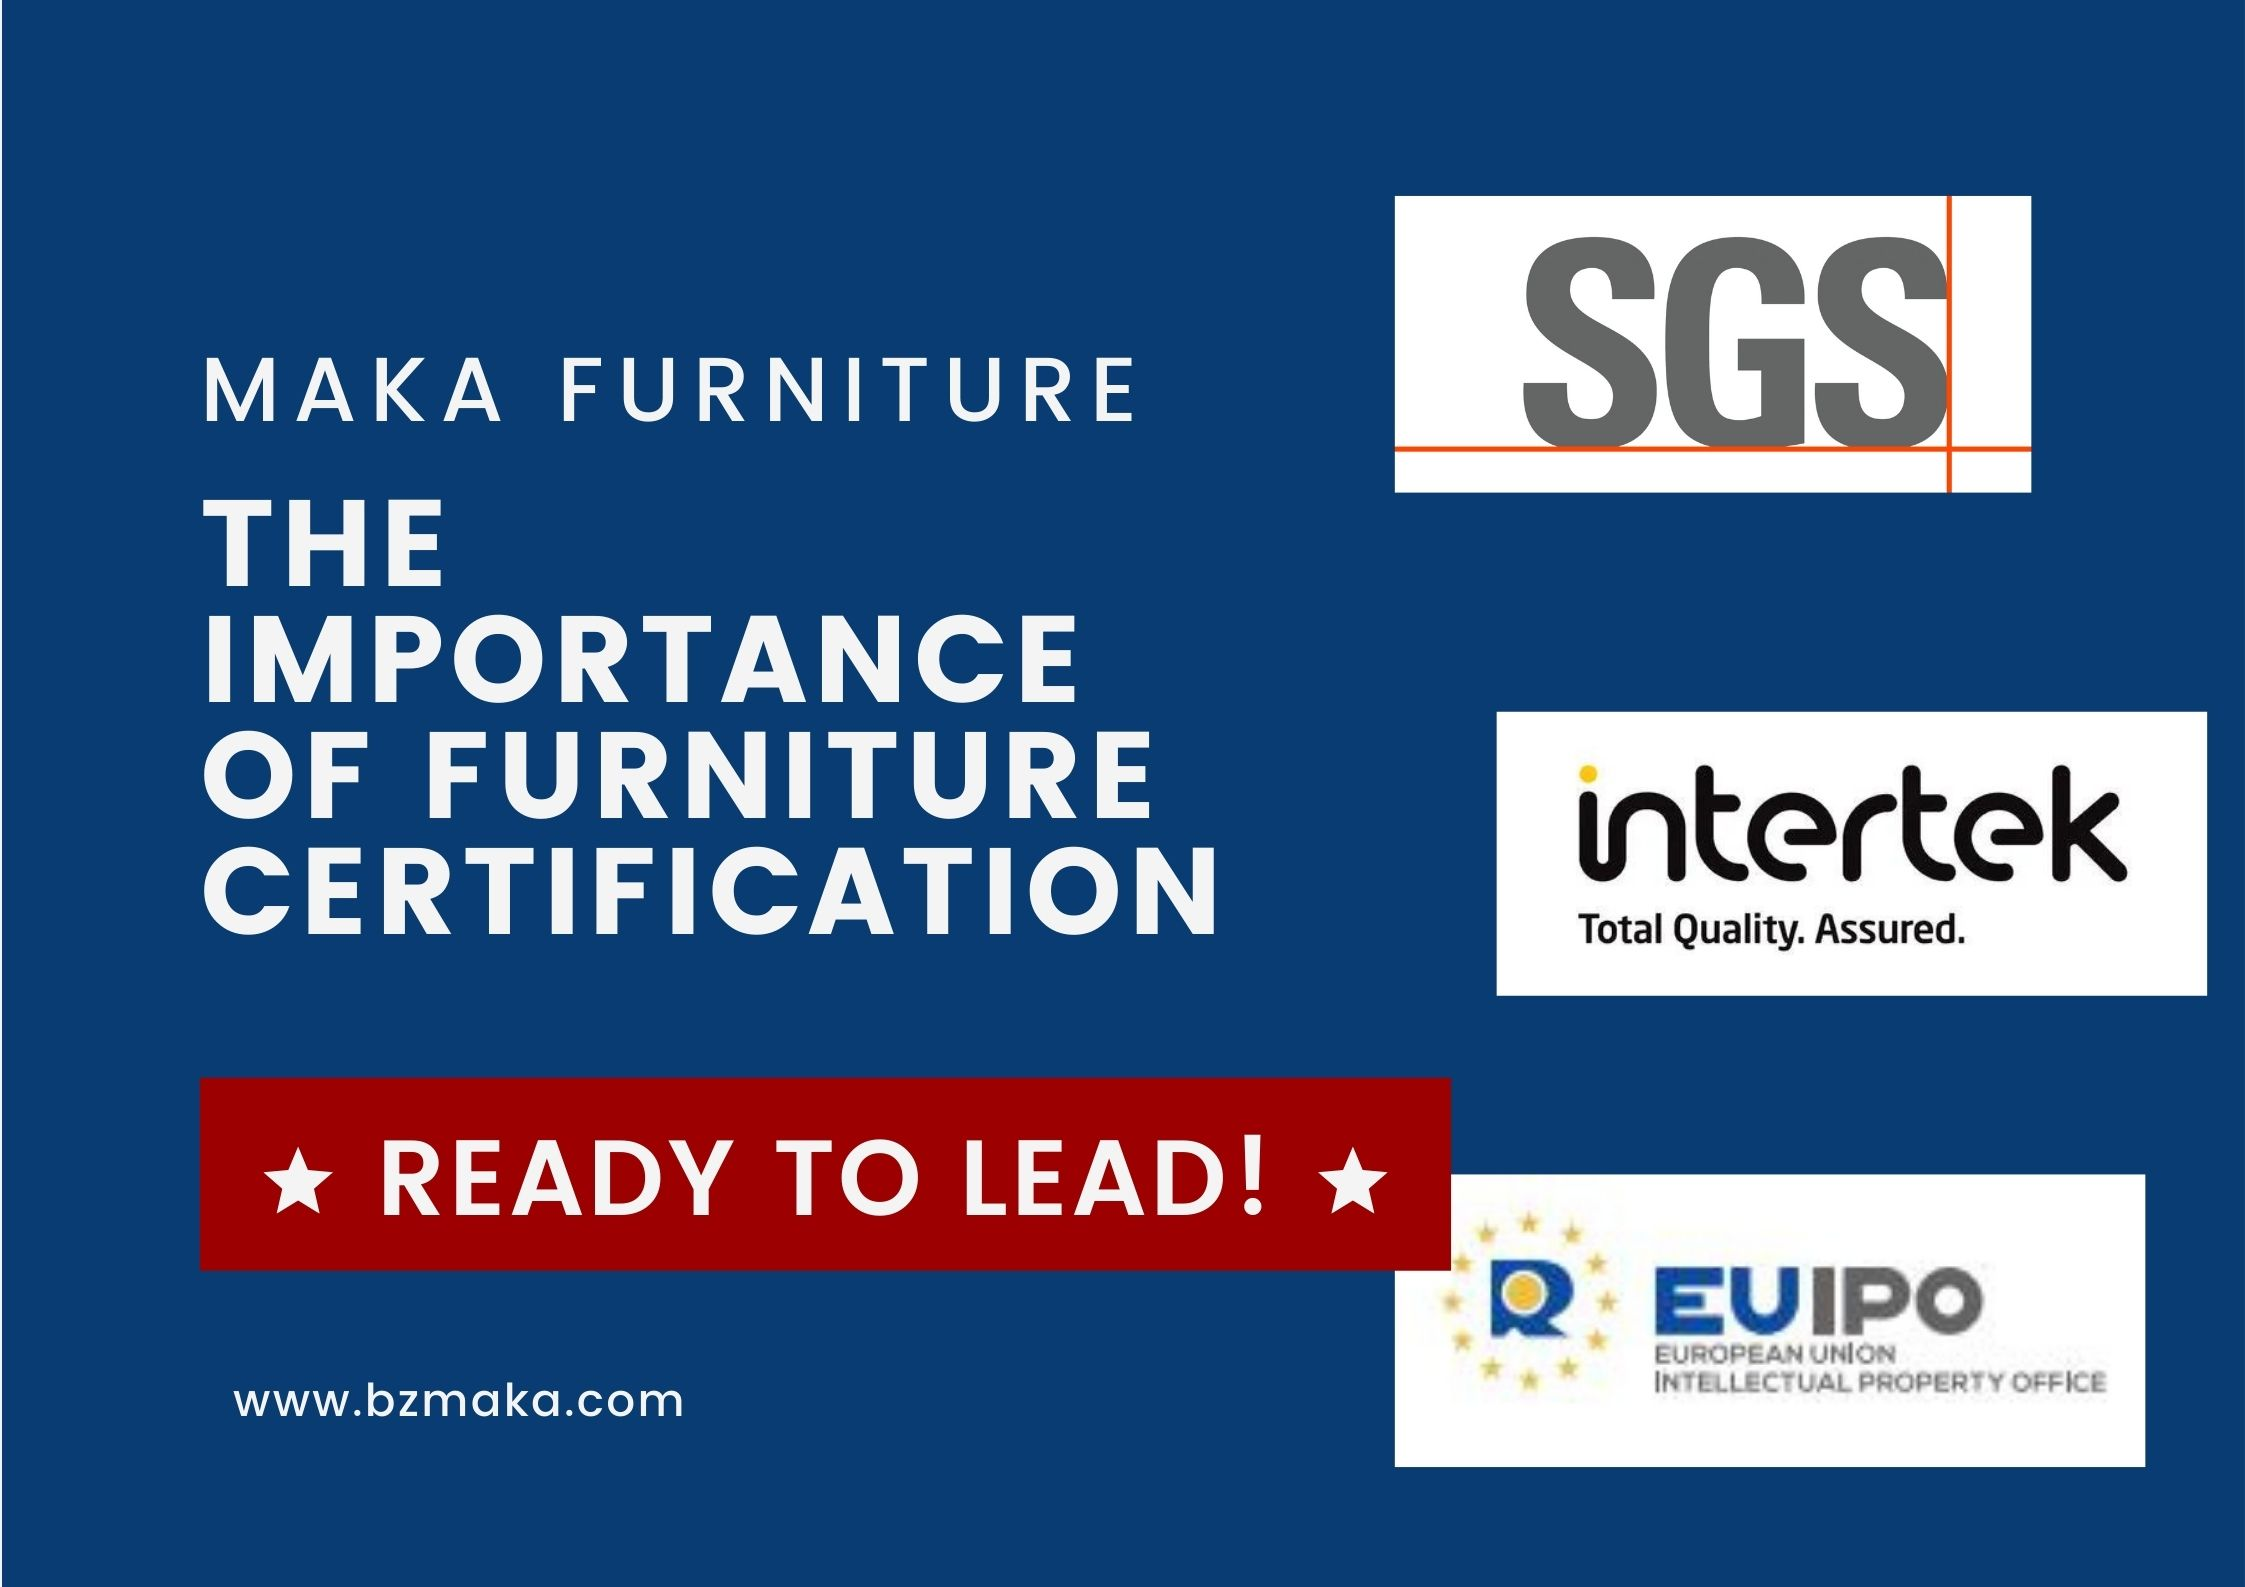 The Importance of Furniture Certification